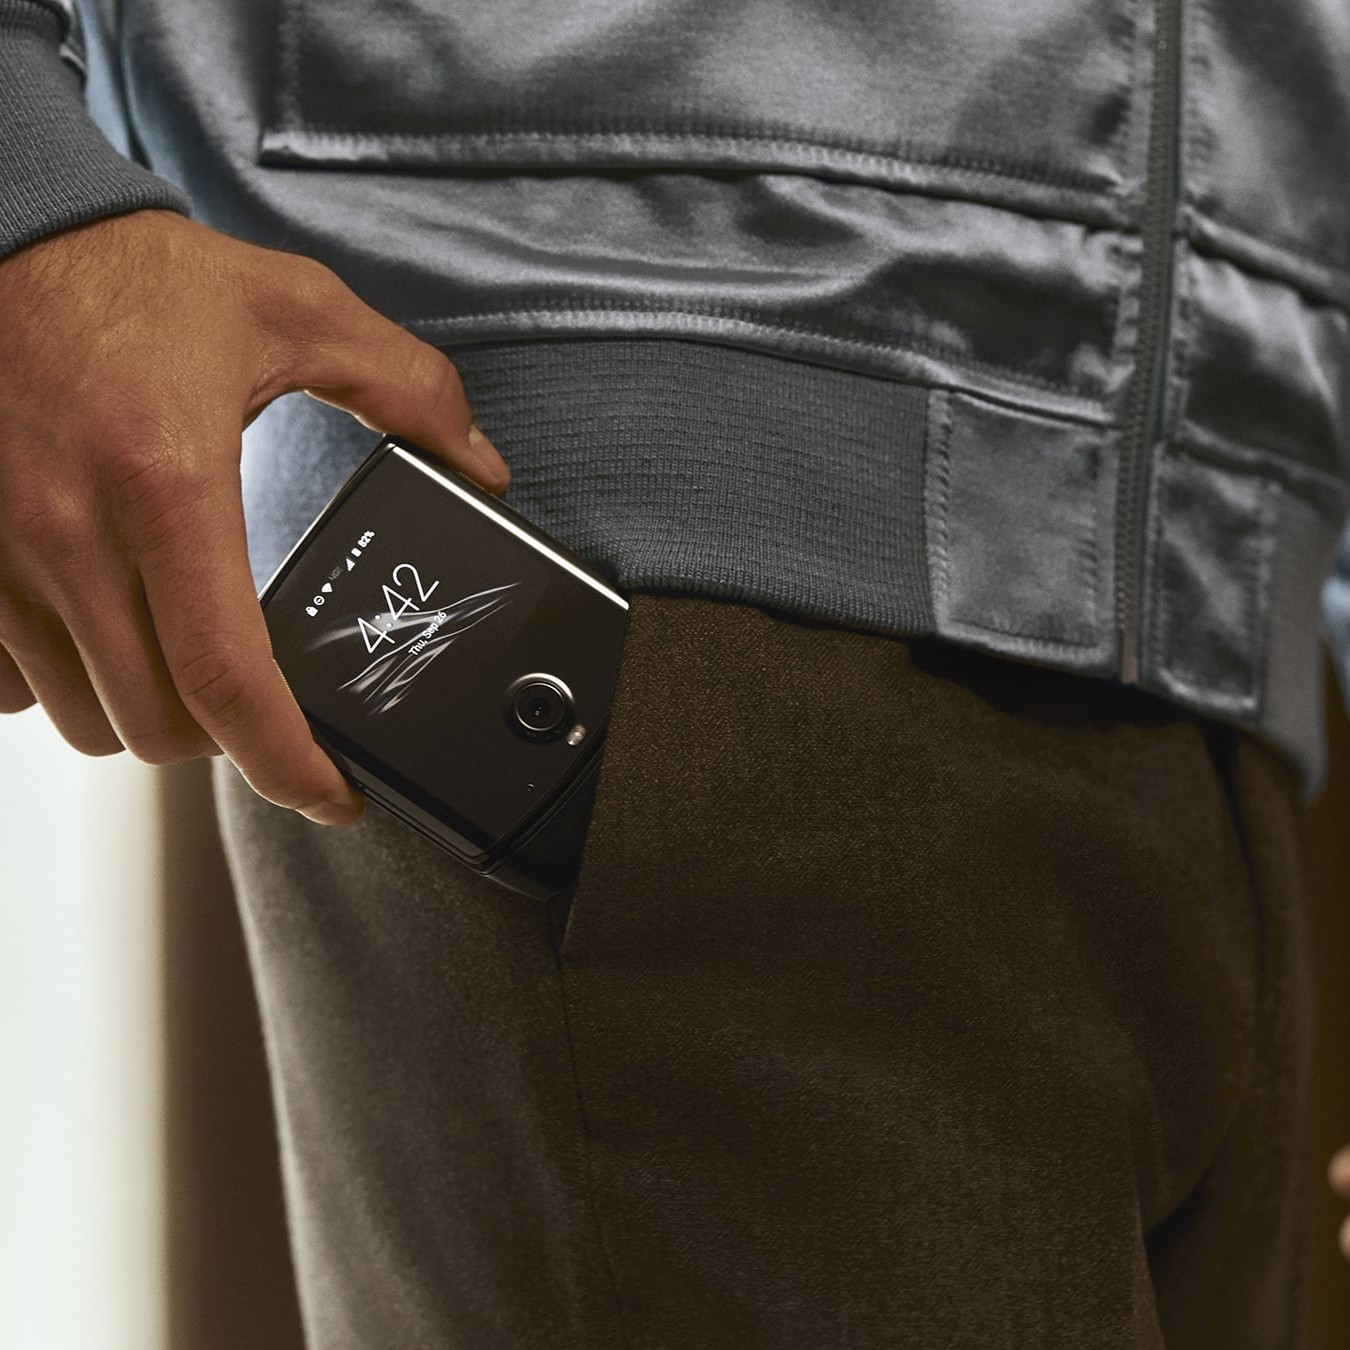 A man putting his motorola razr in his pocket